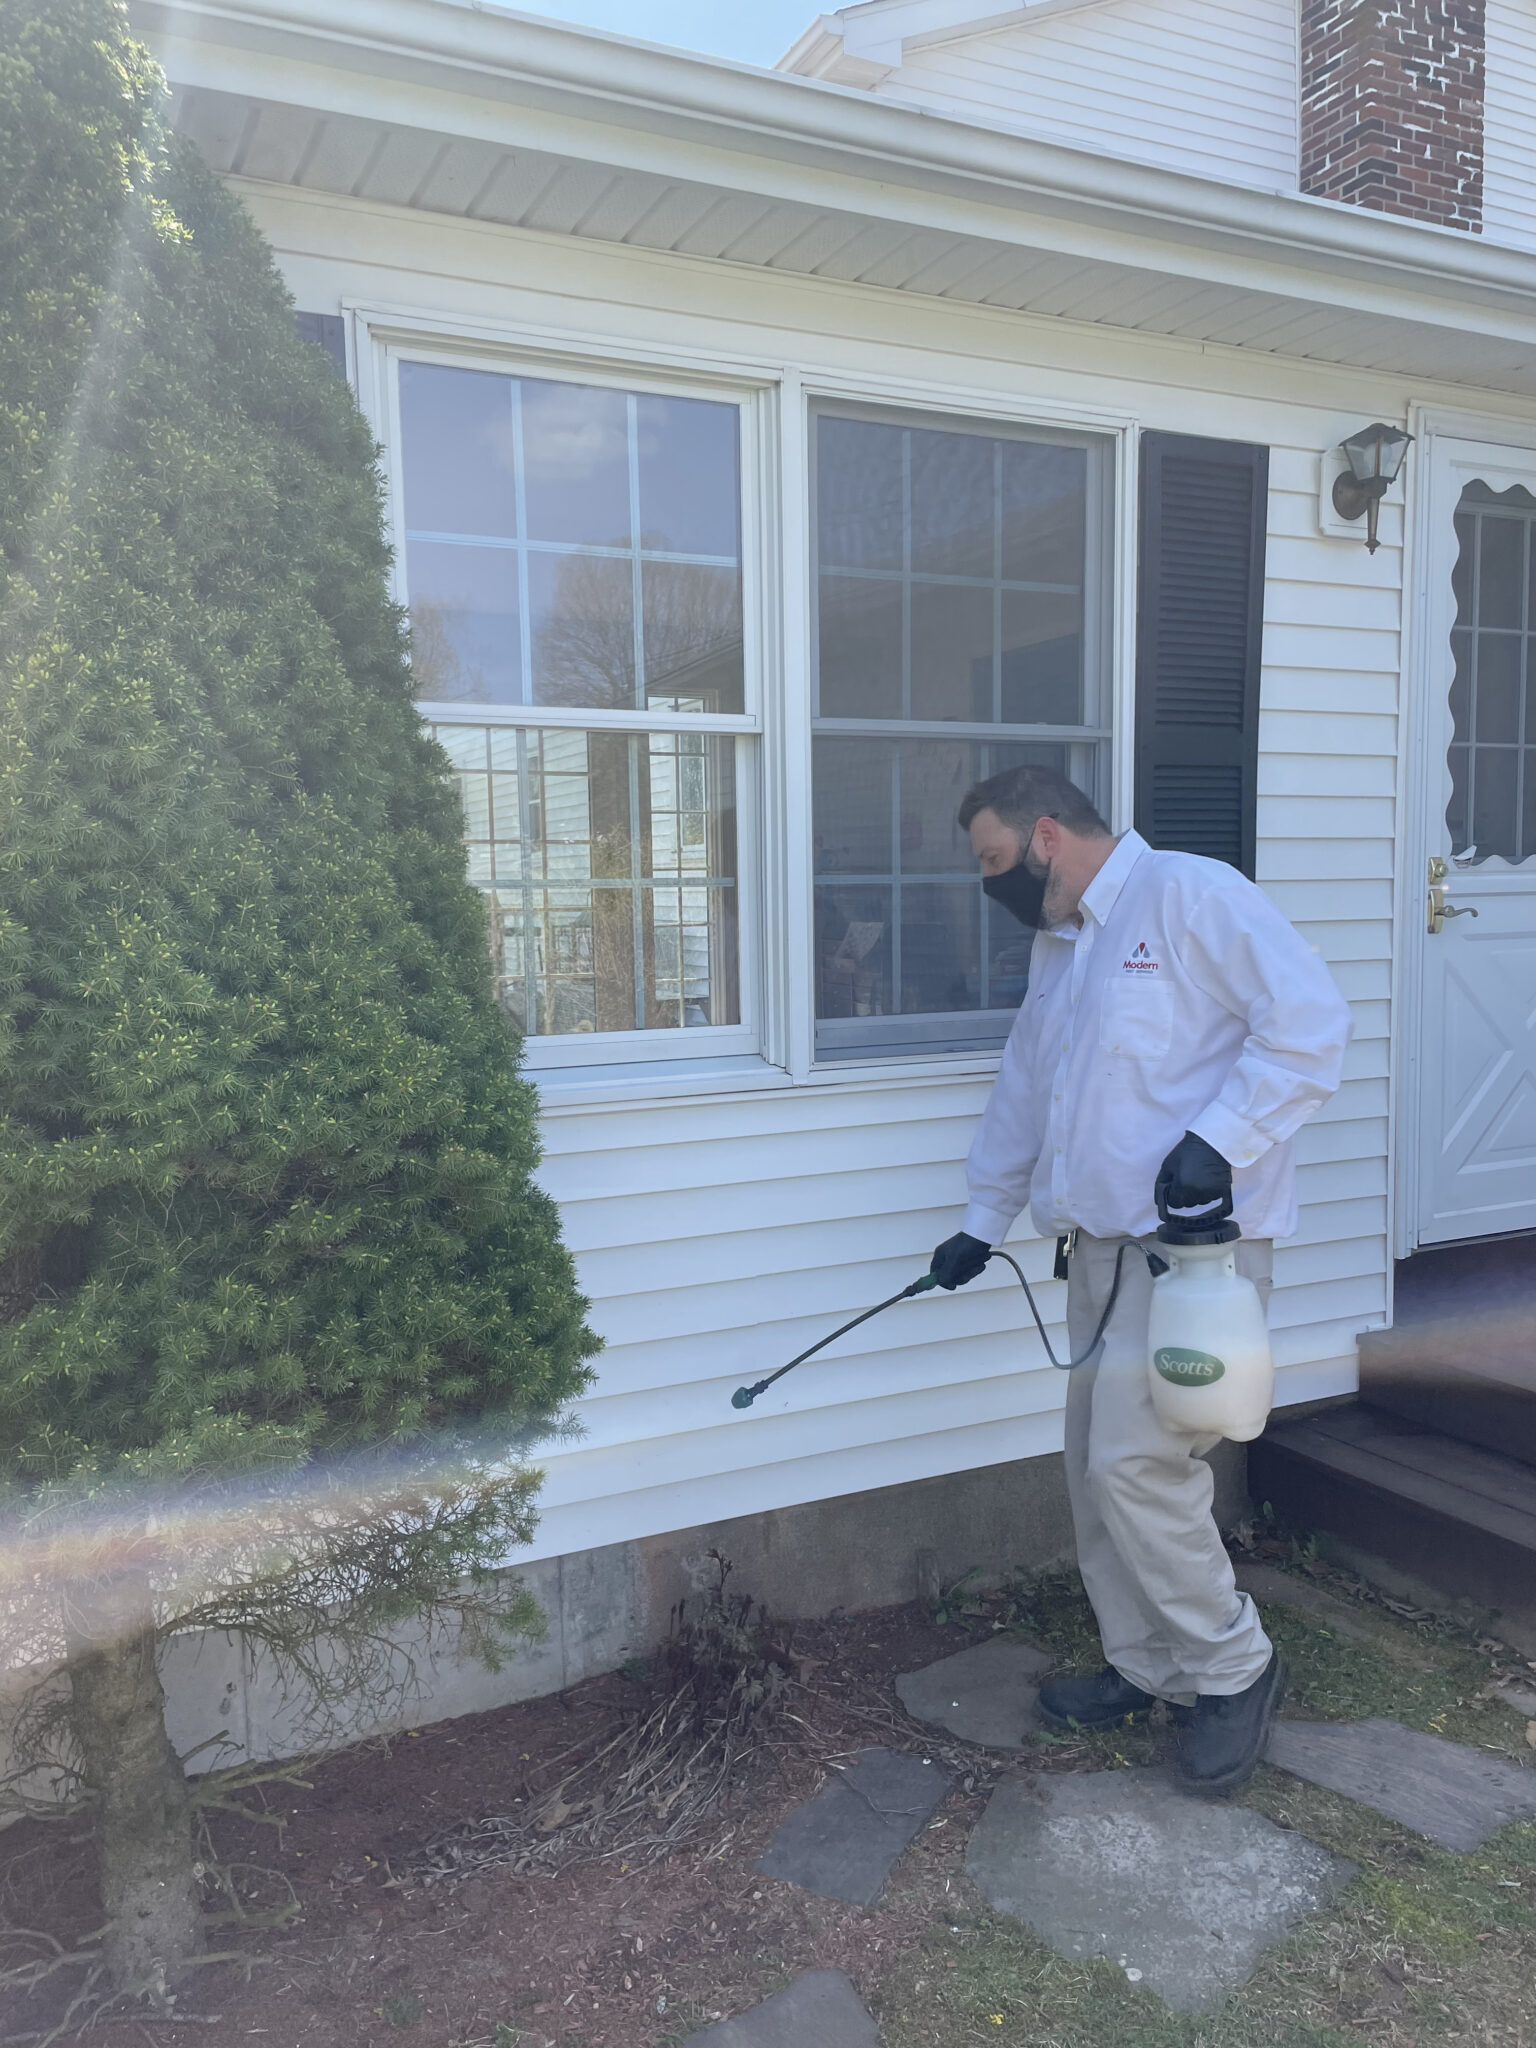 modern pest services treating yard for ticks and mosquitos